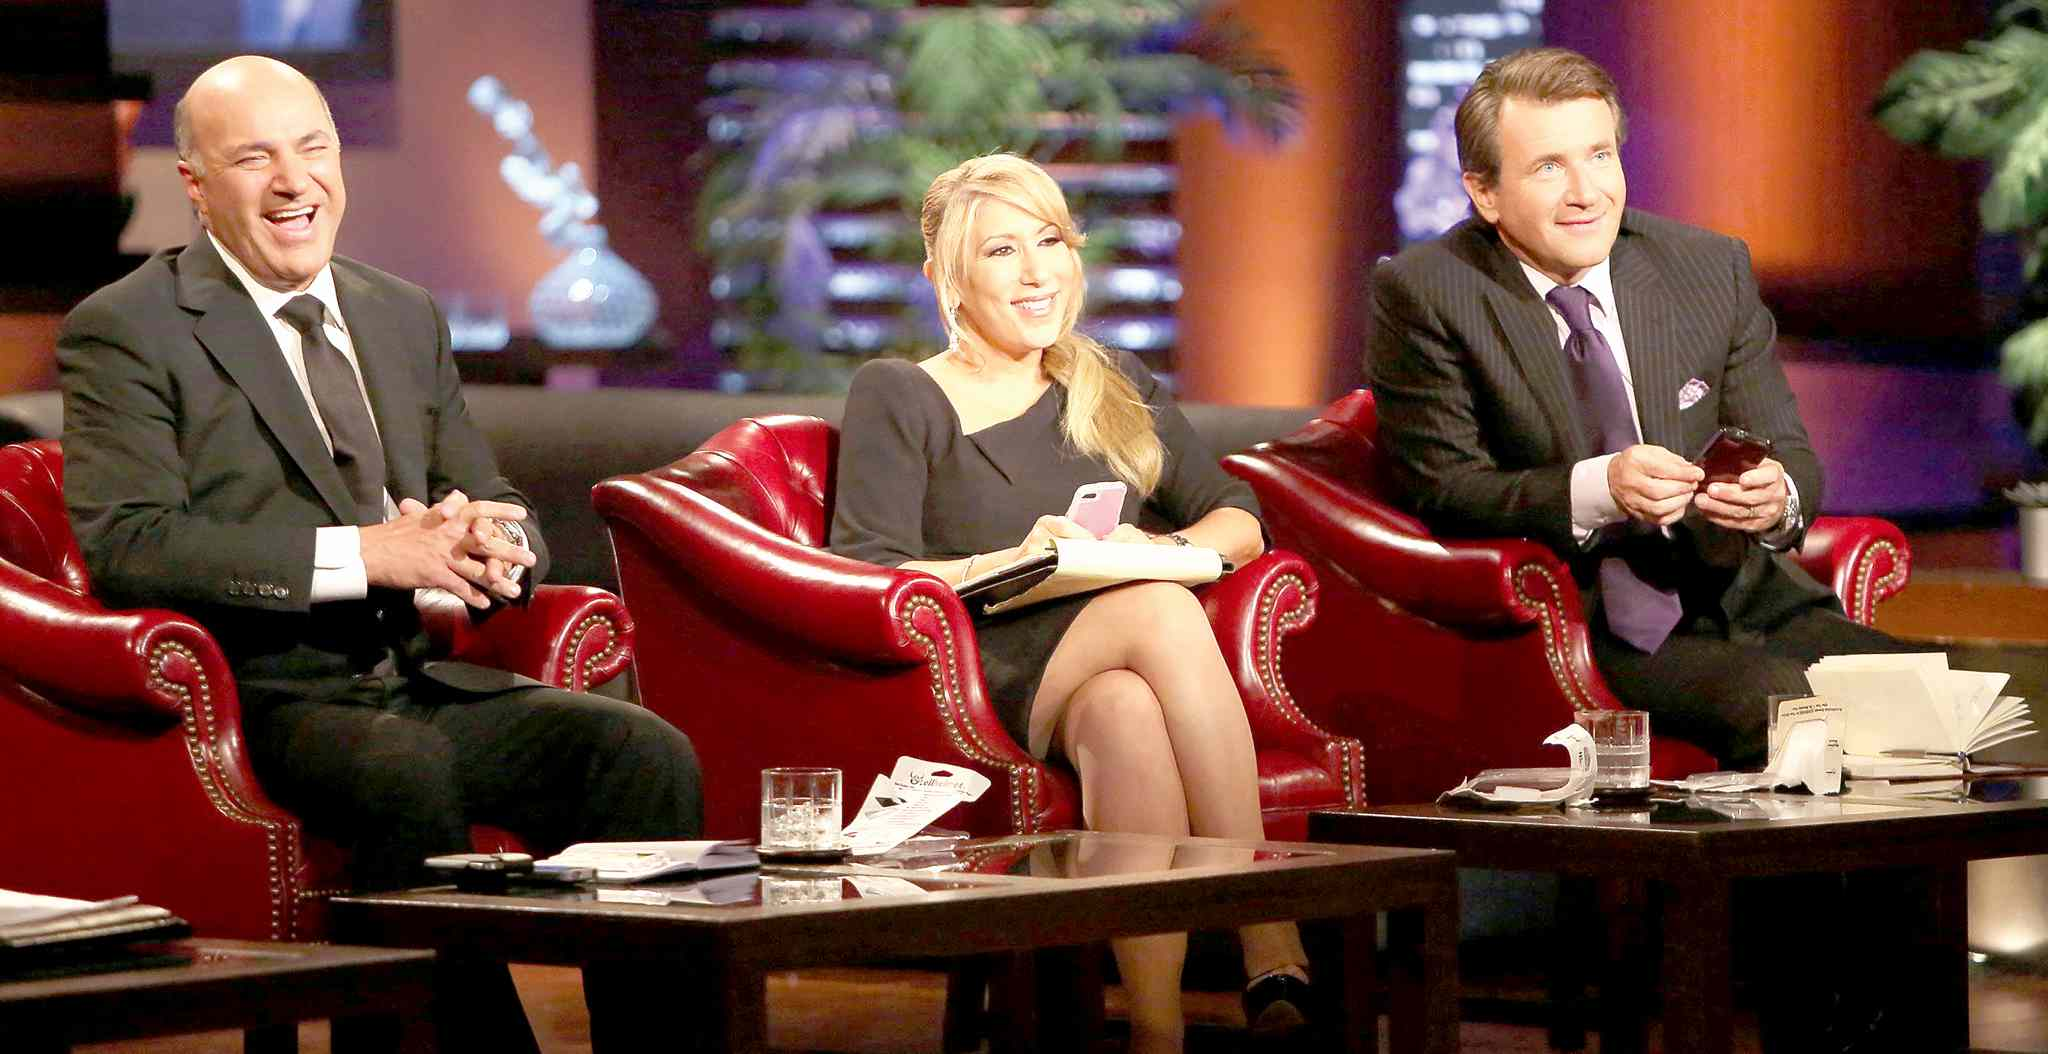 Adam Taylor / Courtesy ABC/ MCTKevin O�Leary, left, with co-hosts Lori Greiner and Robert Herjavec on the ABC show Shark Tank.